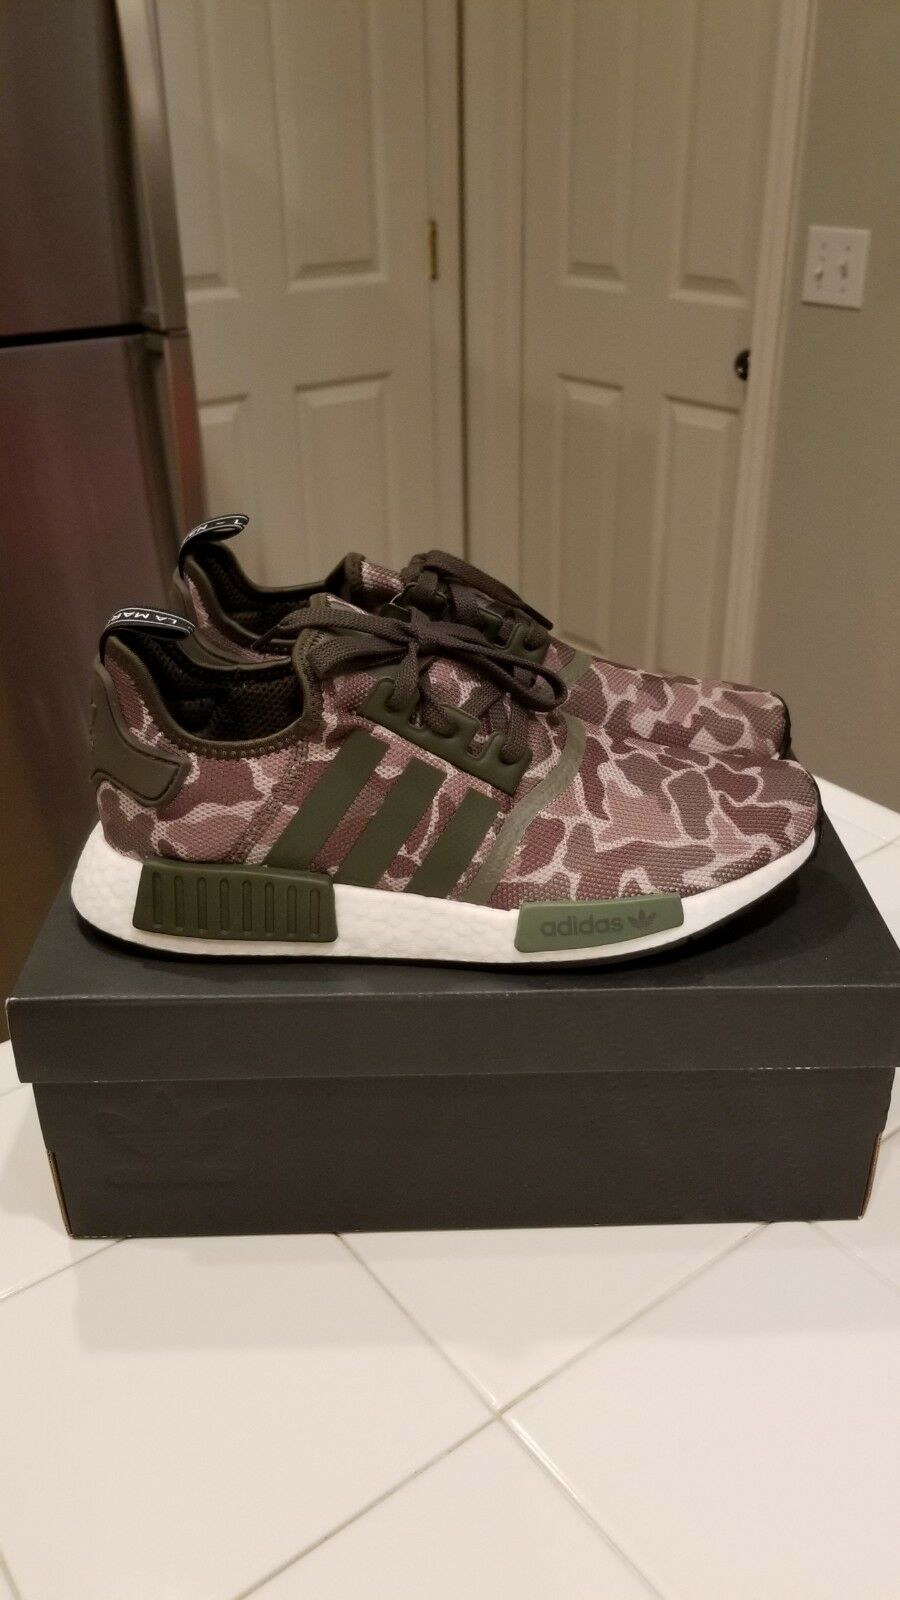 ADIDAS ORIGINALS NMD R1 BOOST SHOES CAMO D96617 CAMOUFLAGE NEW MENS SIZE 10